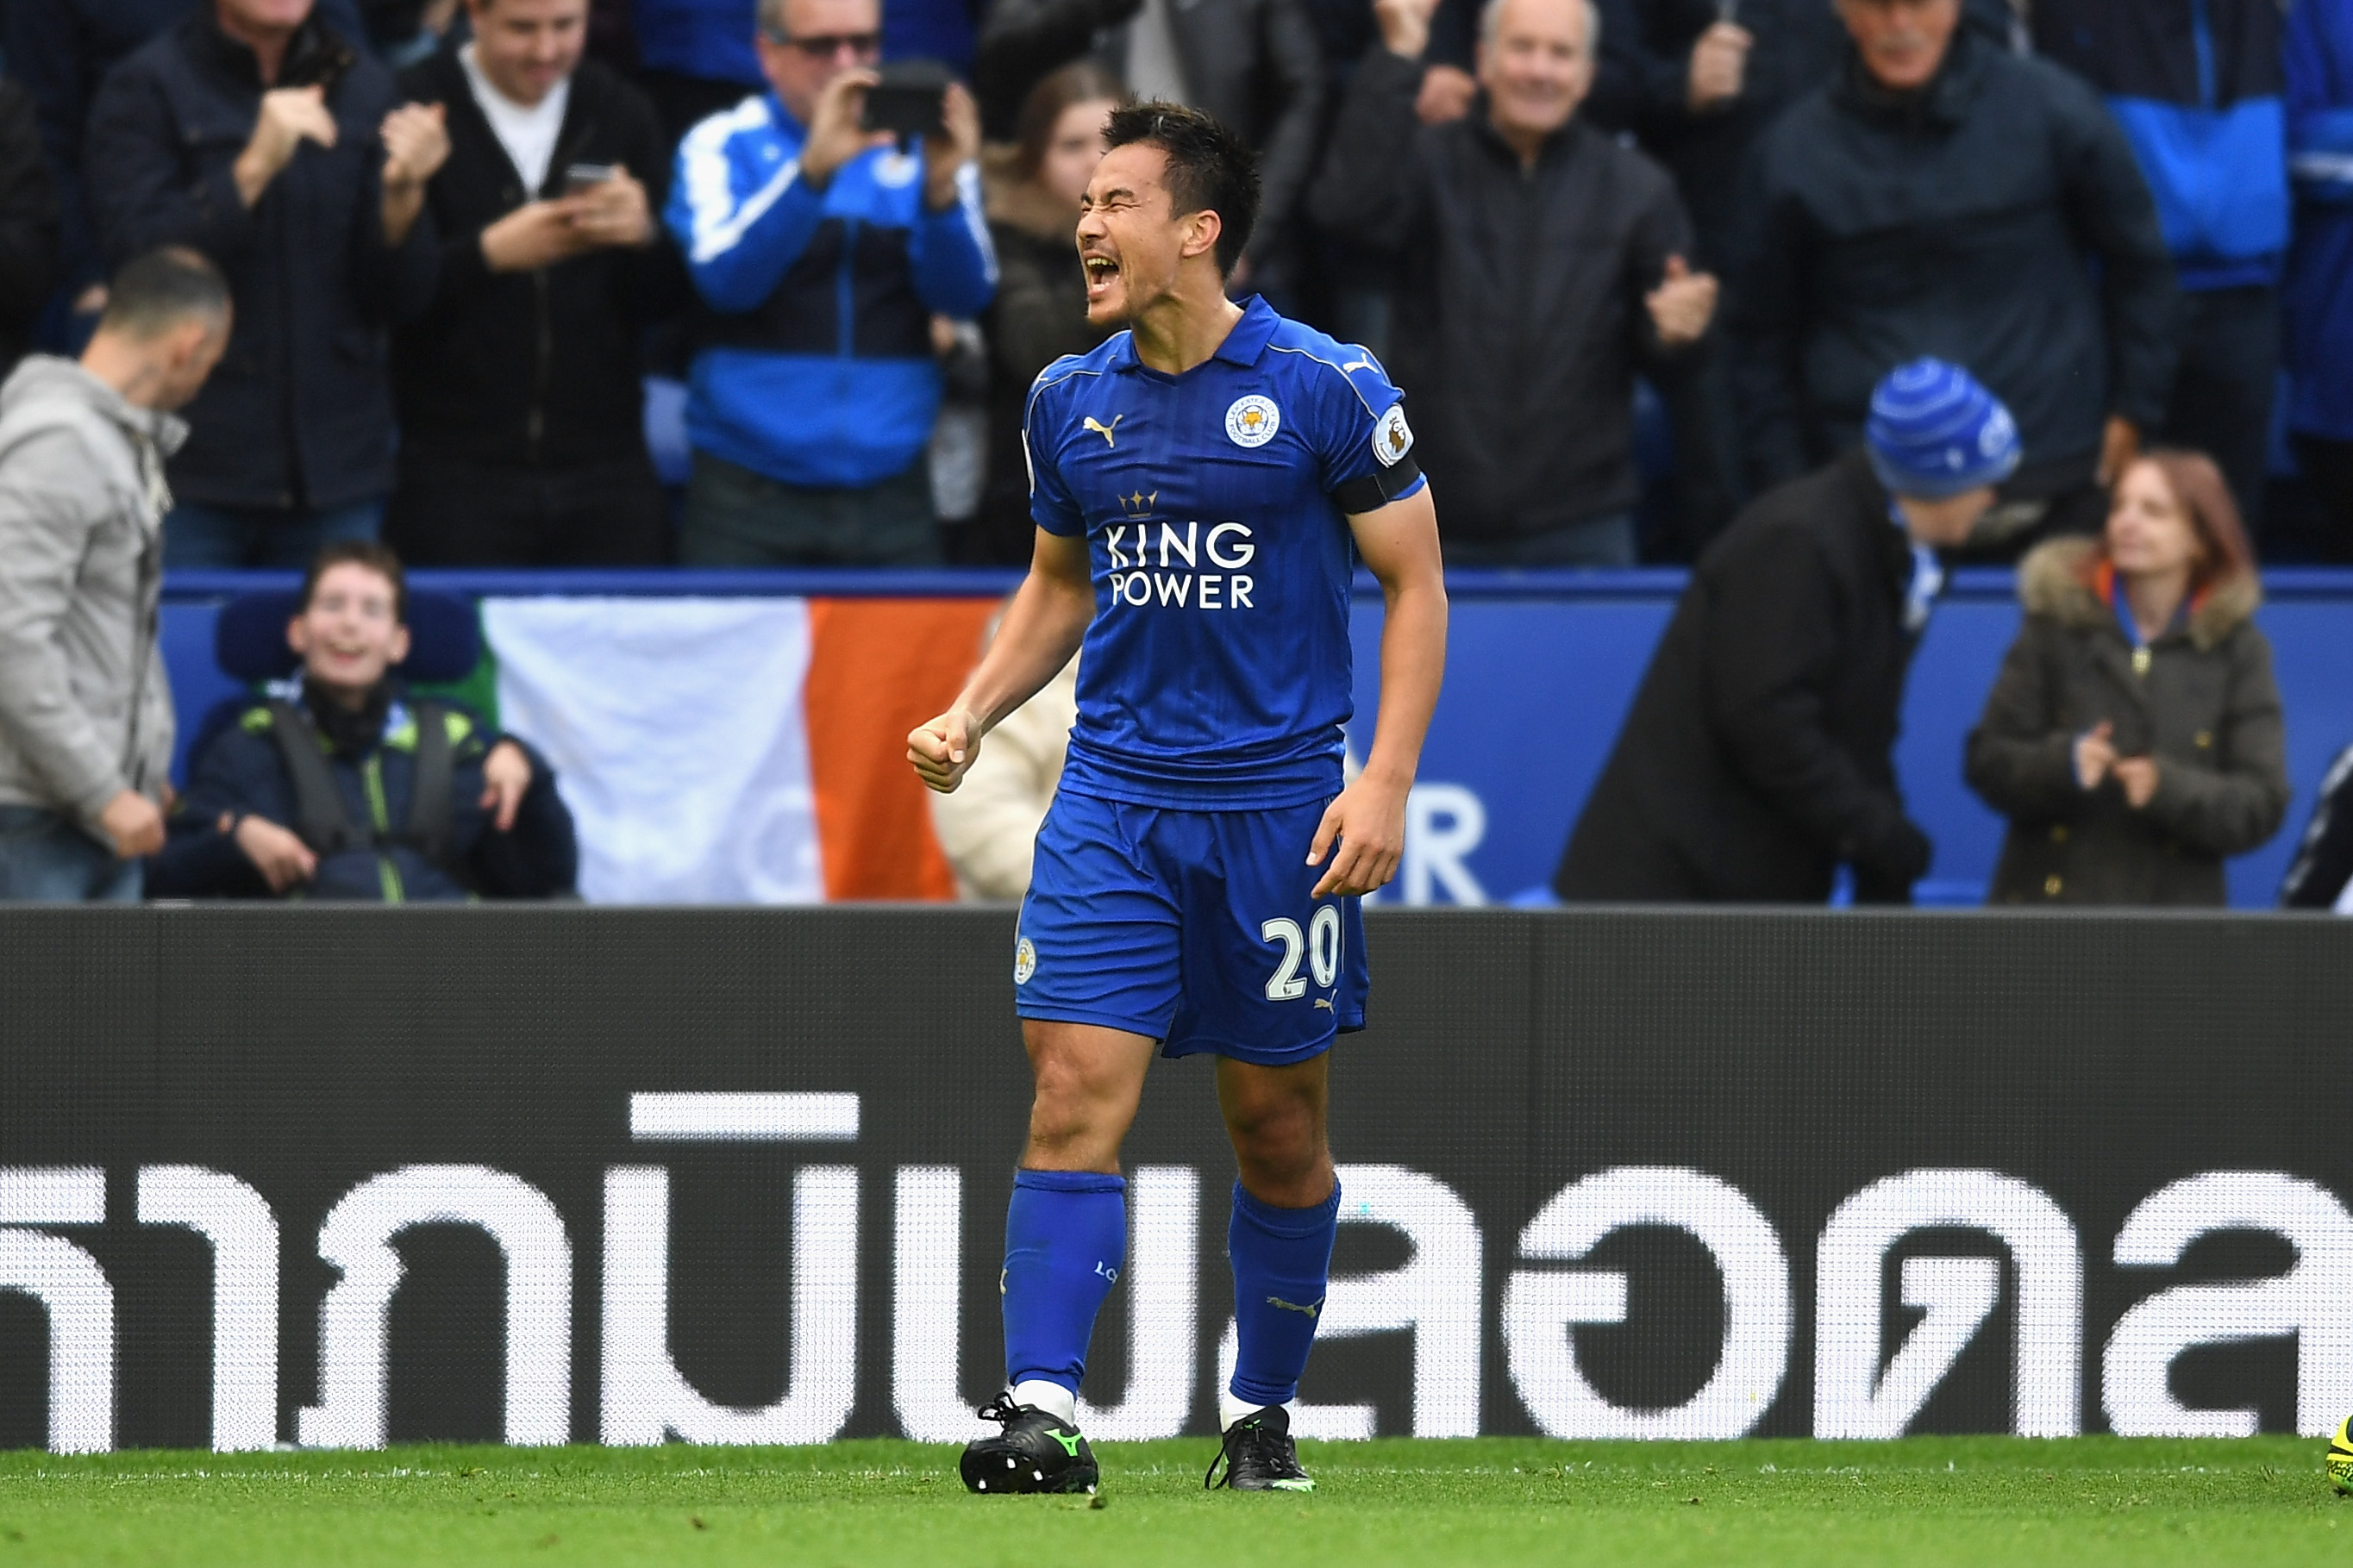 Leicester City star Shinji Okazaki just quietly equalled a Premier League record